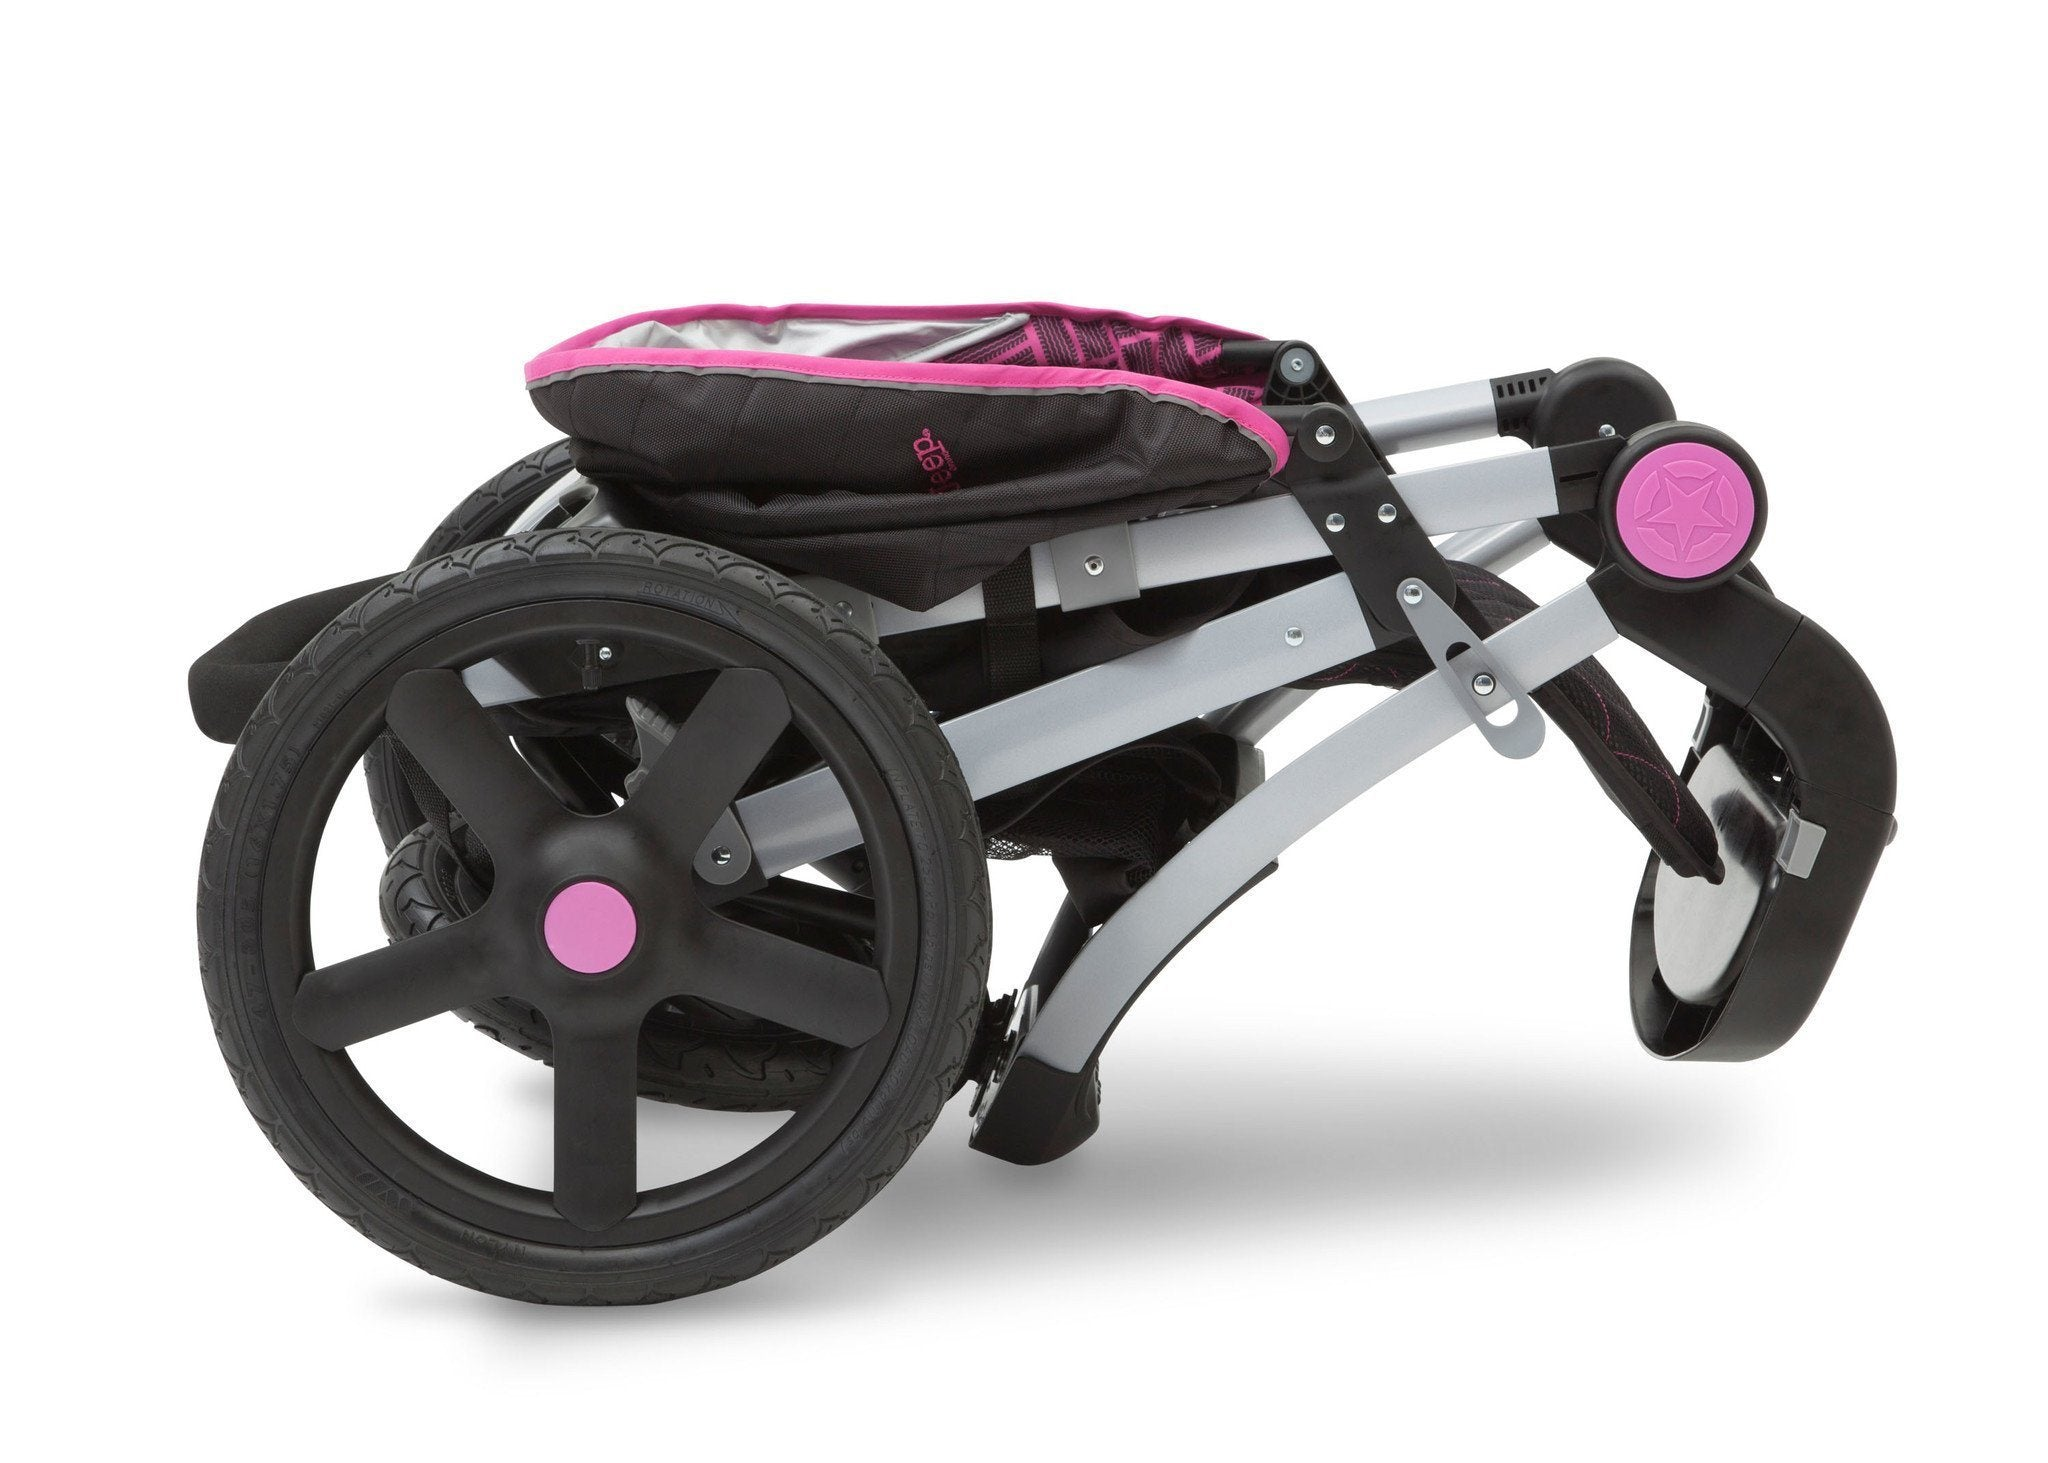 Jeep Adventure All Terrain Jogger Stroller by Delta Children, Berry Tracks (678), can be folded quickly and compactly